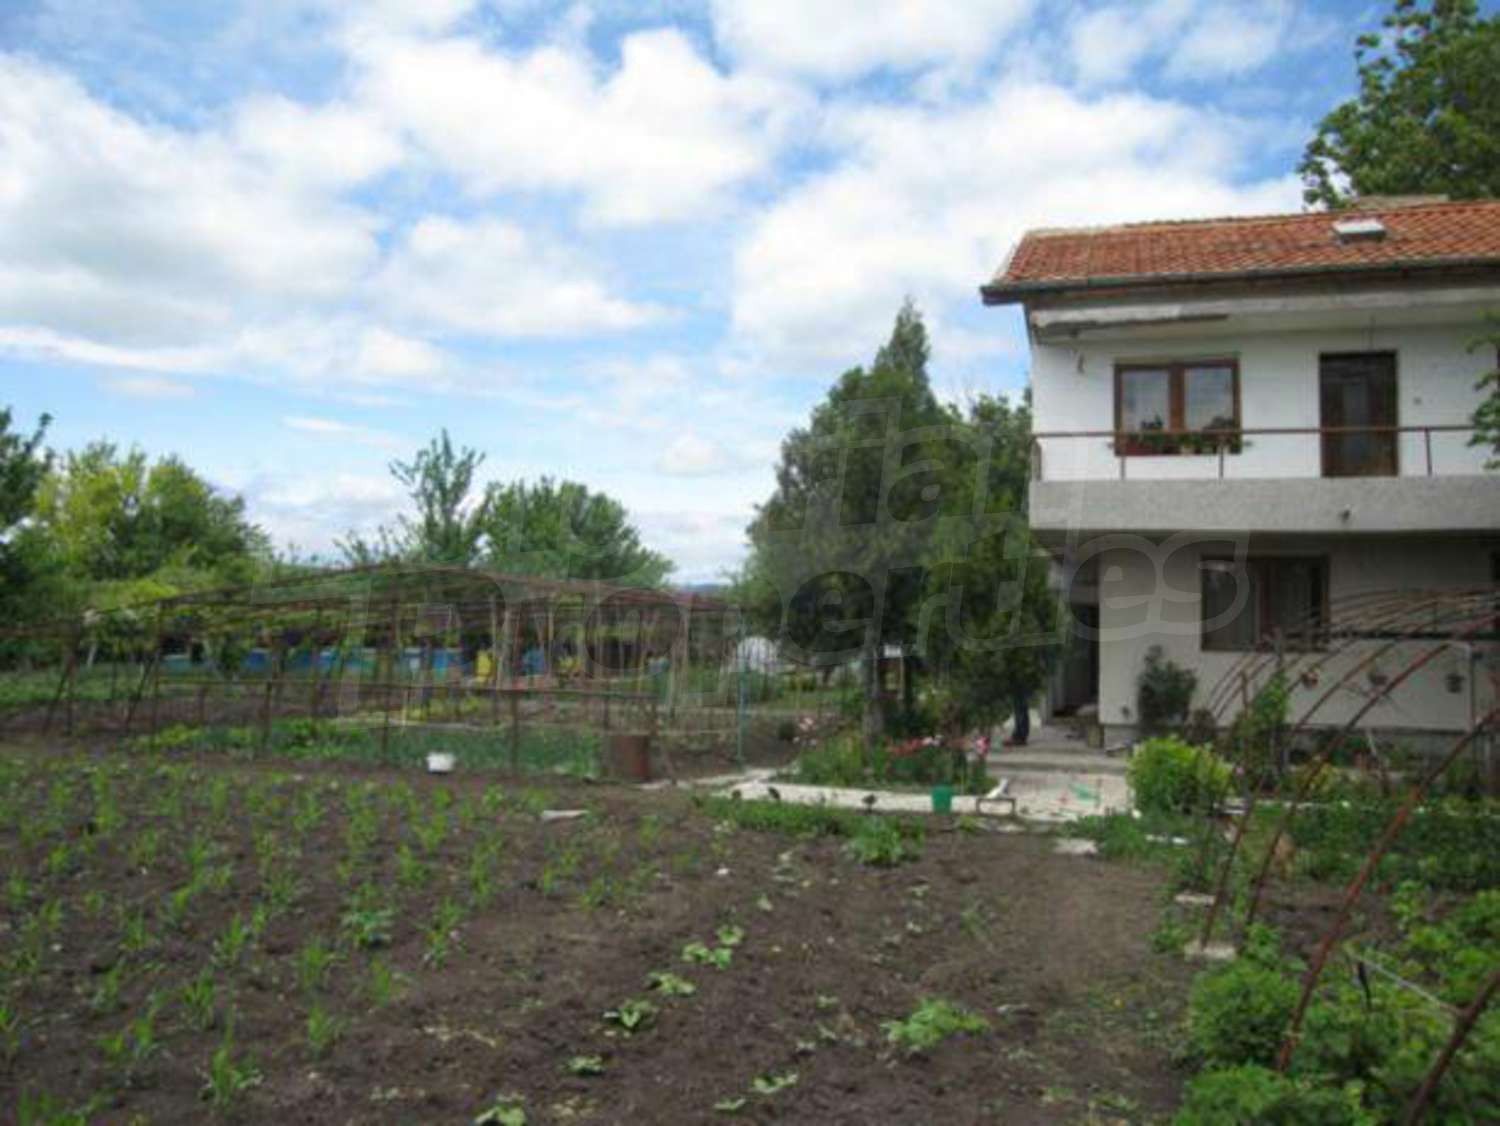 House for sale near burgas bulgaria cheap house with a for Extremely cheap houses